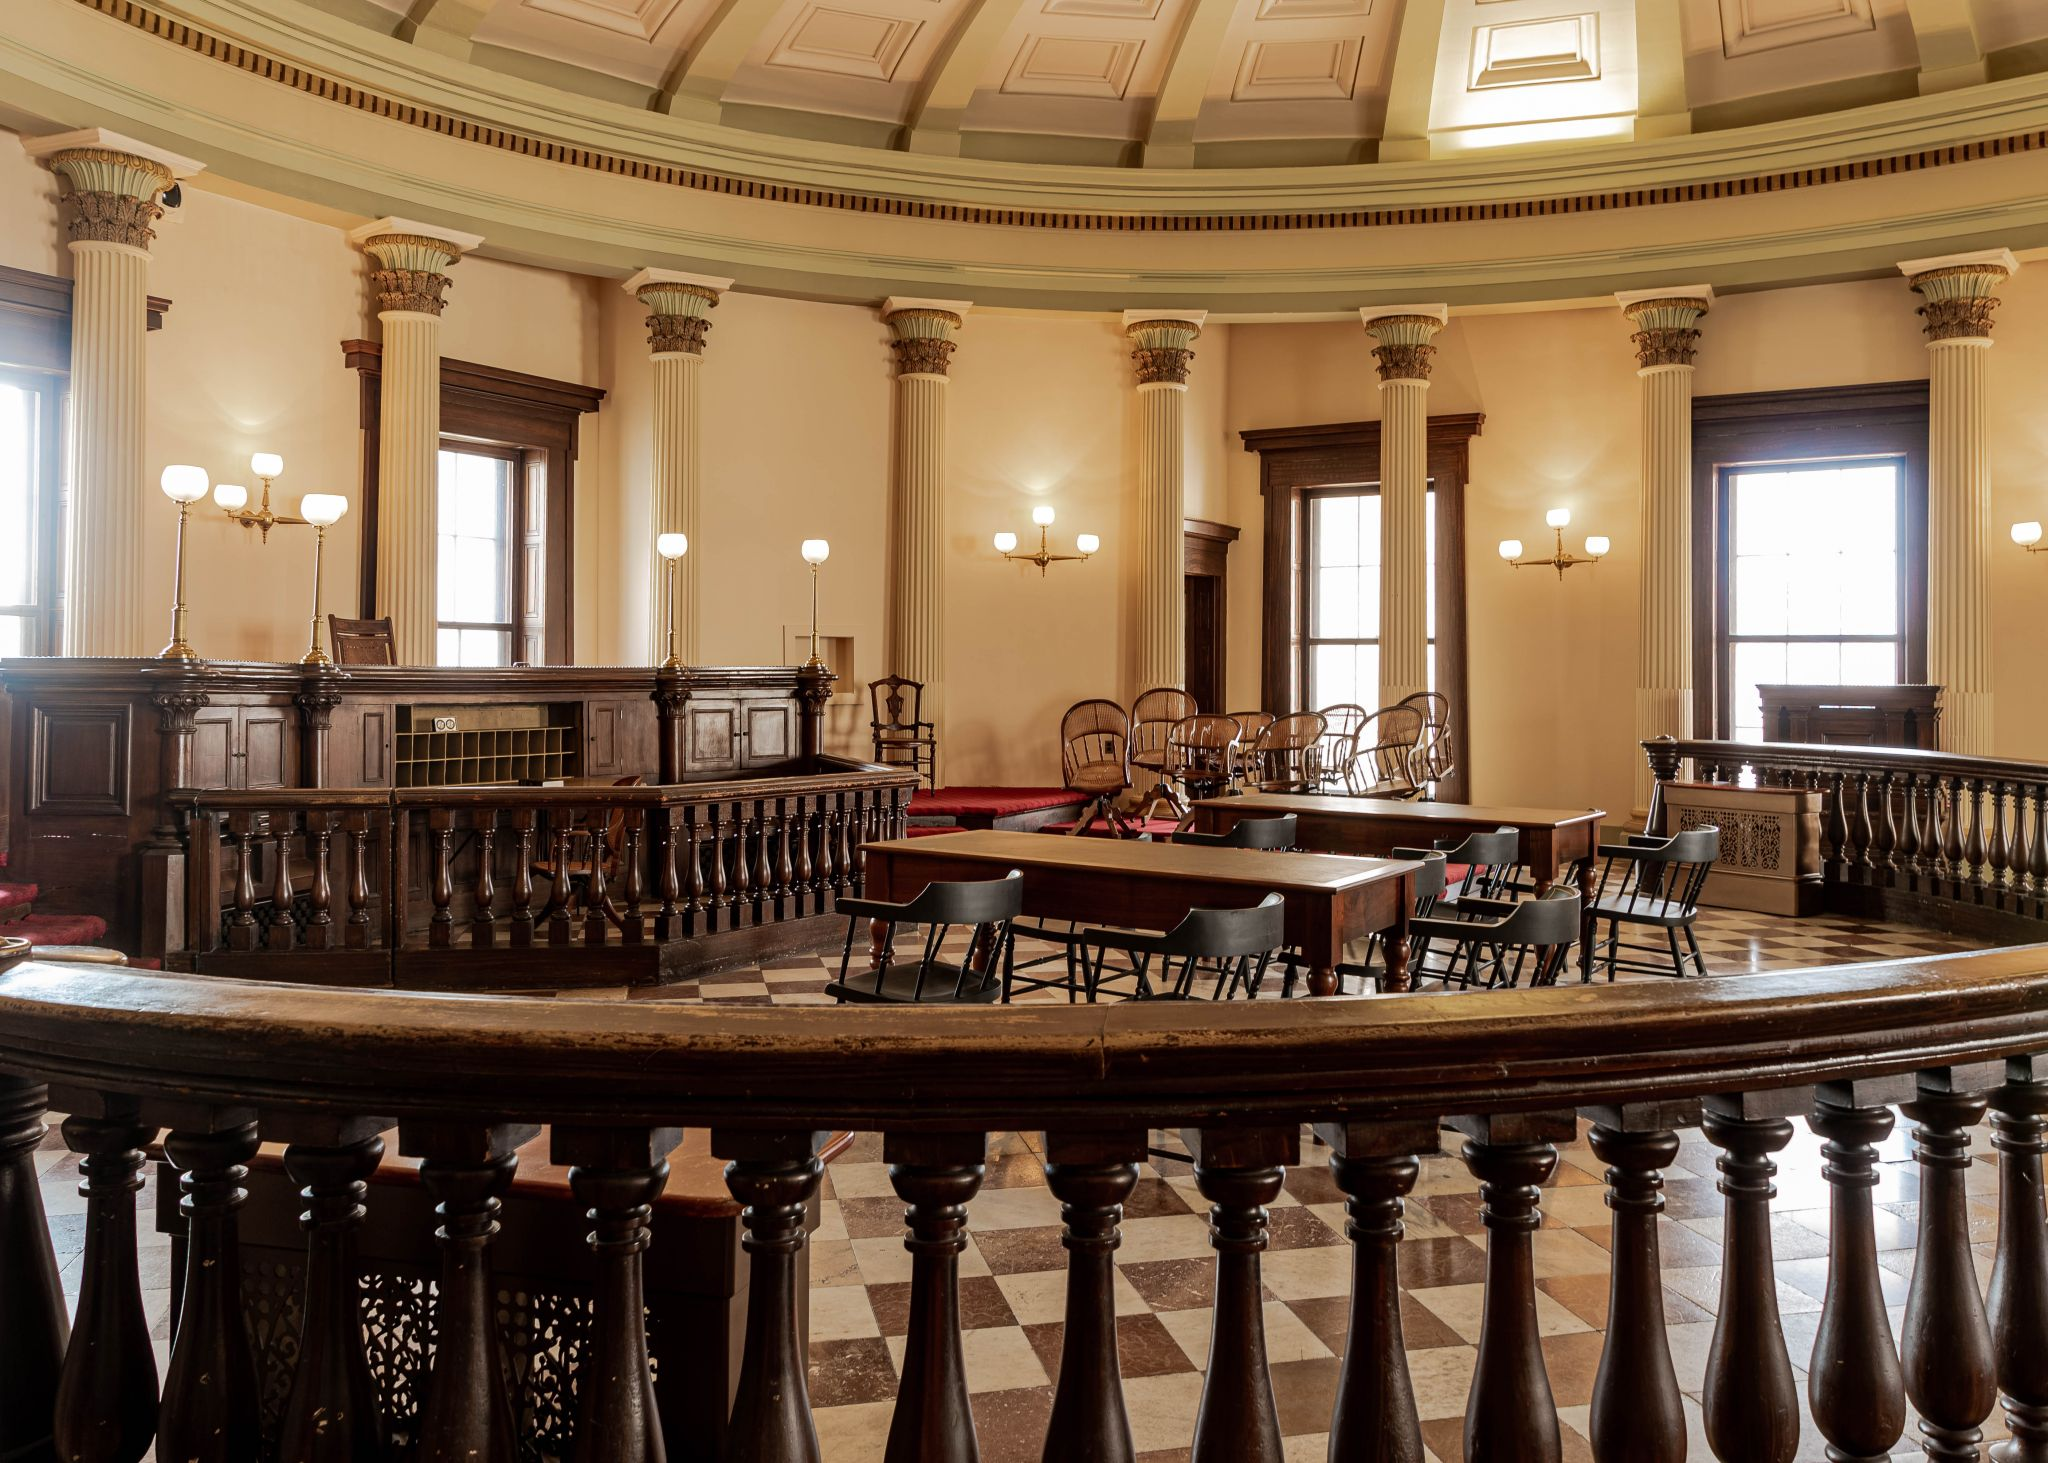 Old Courthouse, St. Louis, MO, USA